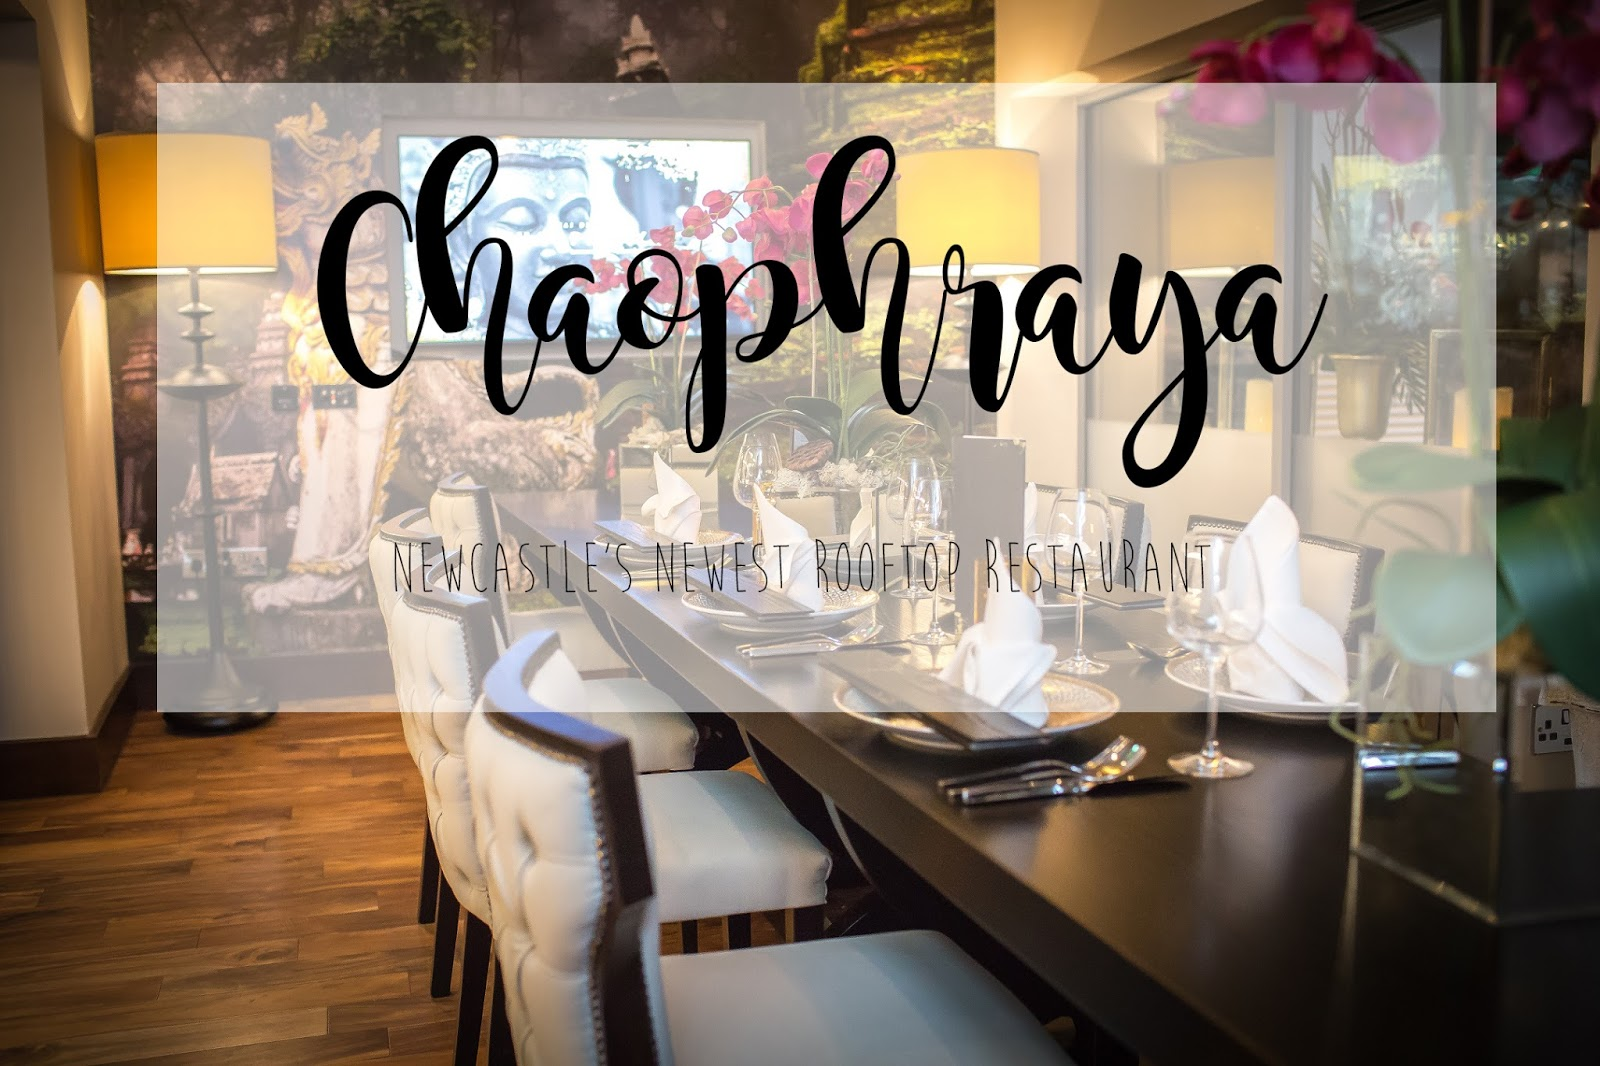 Chaophraya: Newcastle's Newest Rooftop Restaurant